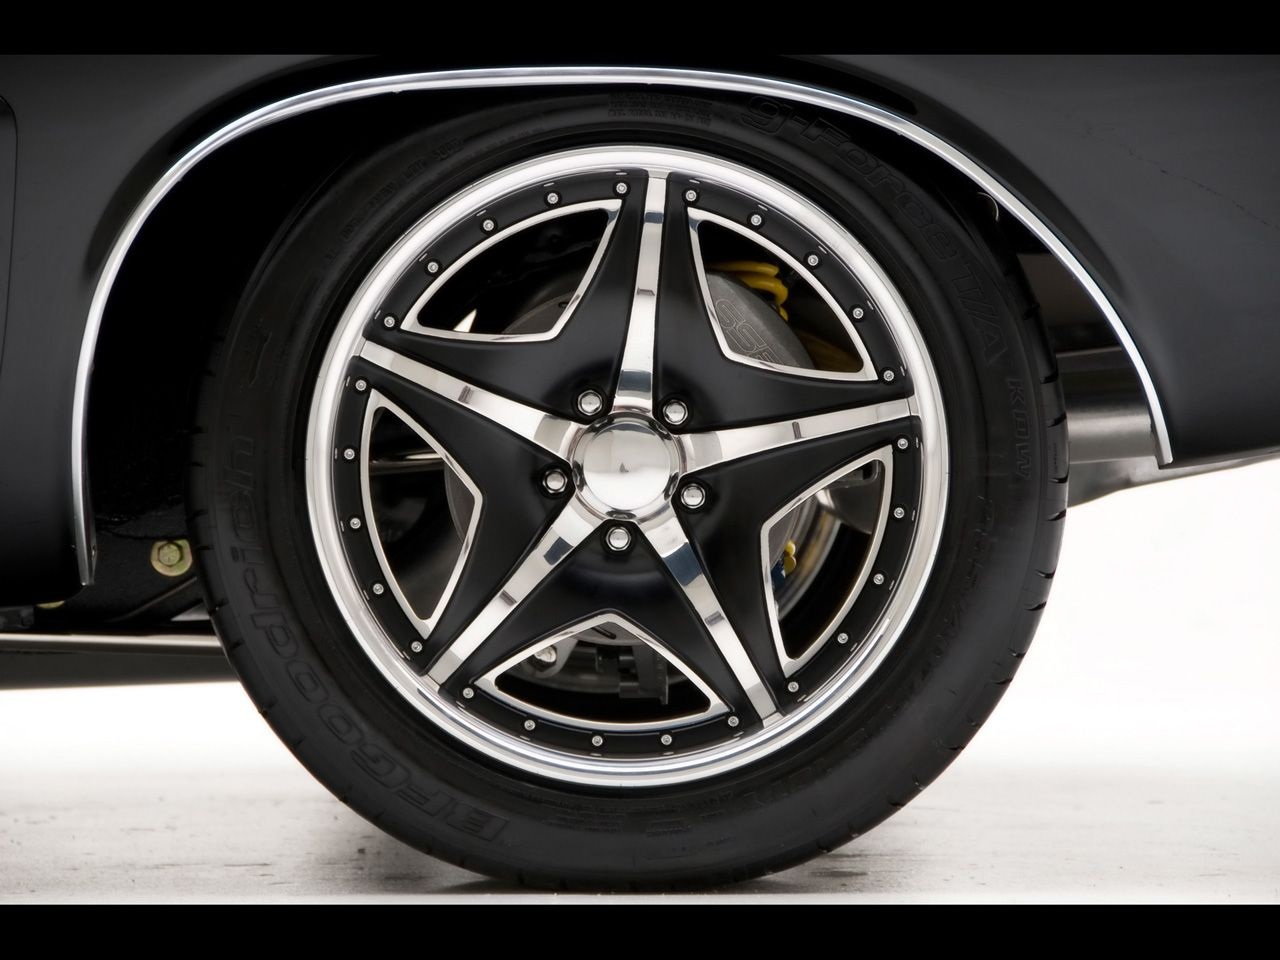 1971 Dodge Challenger R T Muscle Car By Modern Muscle Rear Wheel Rim Idea Car Wheels Car Wheels Rims Wheel Rims